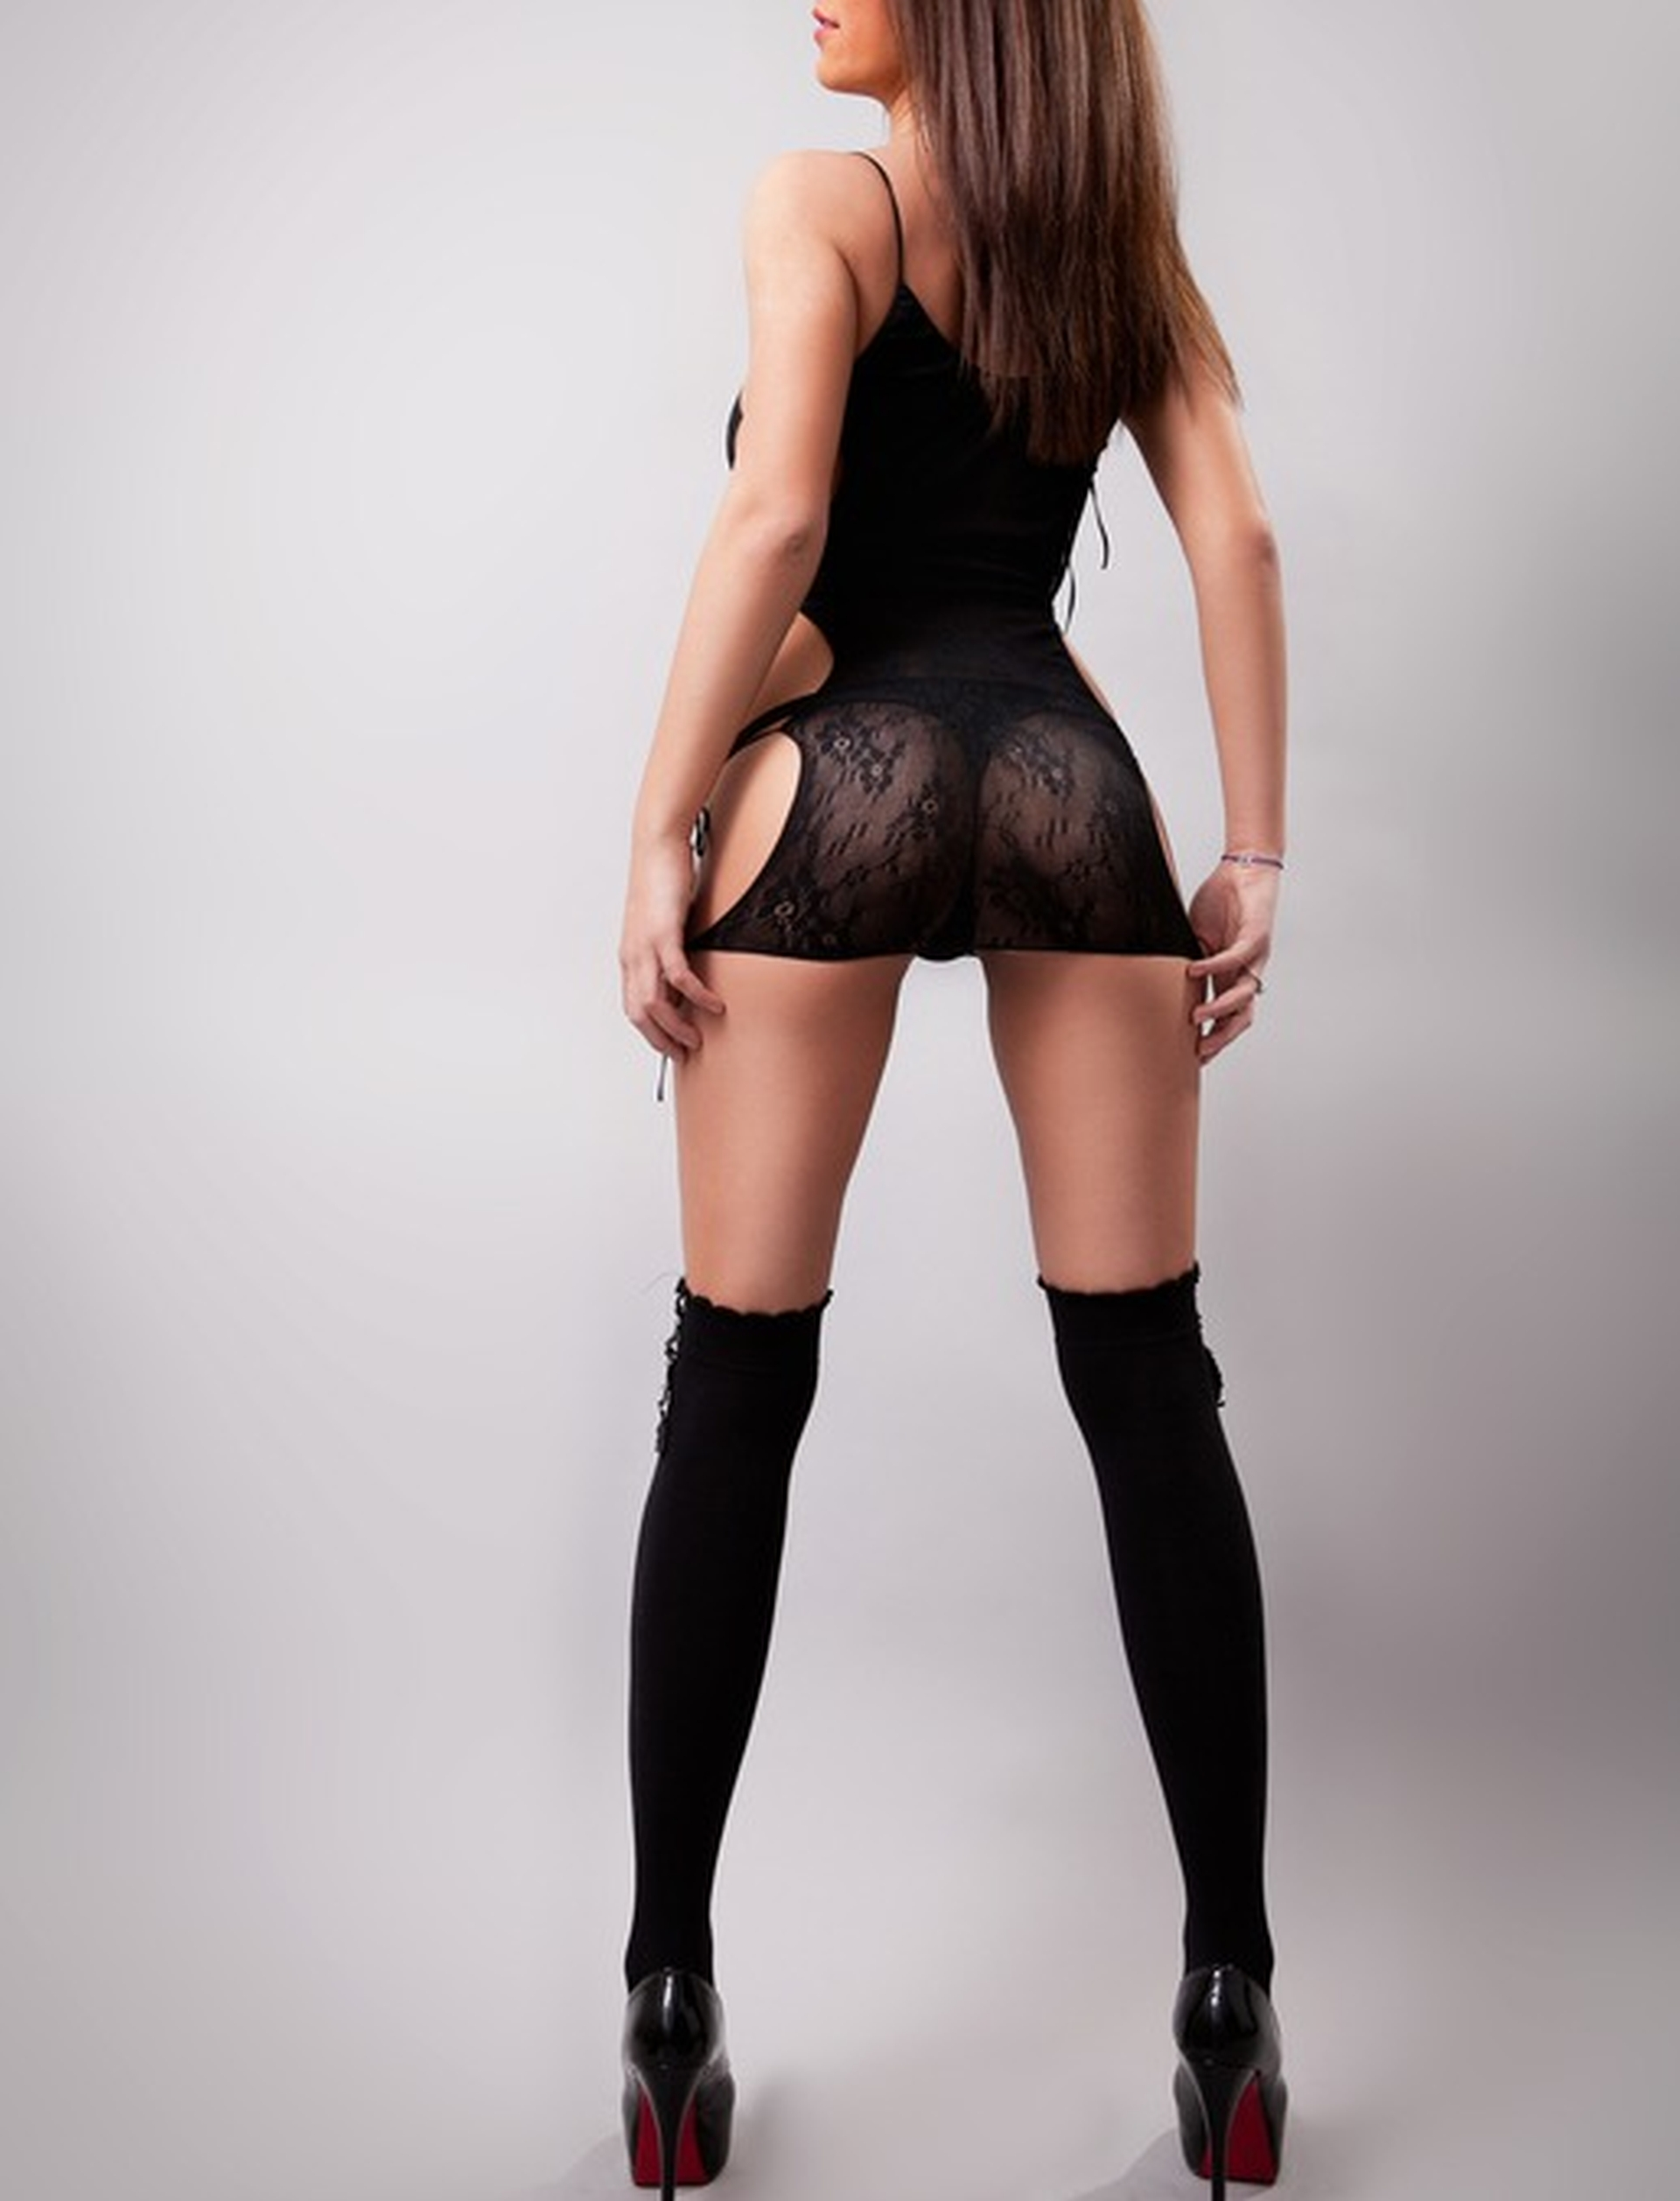 Agency Sexy Prague Escort